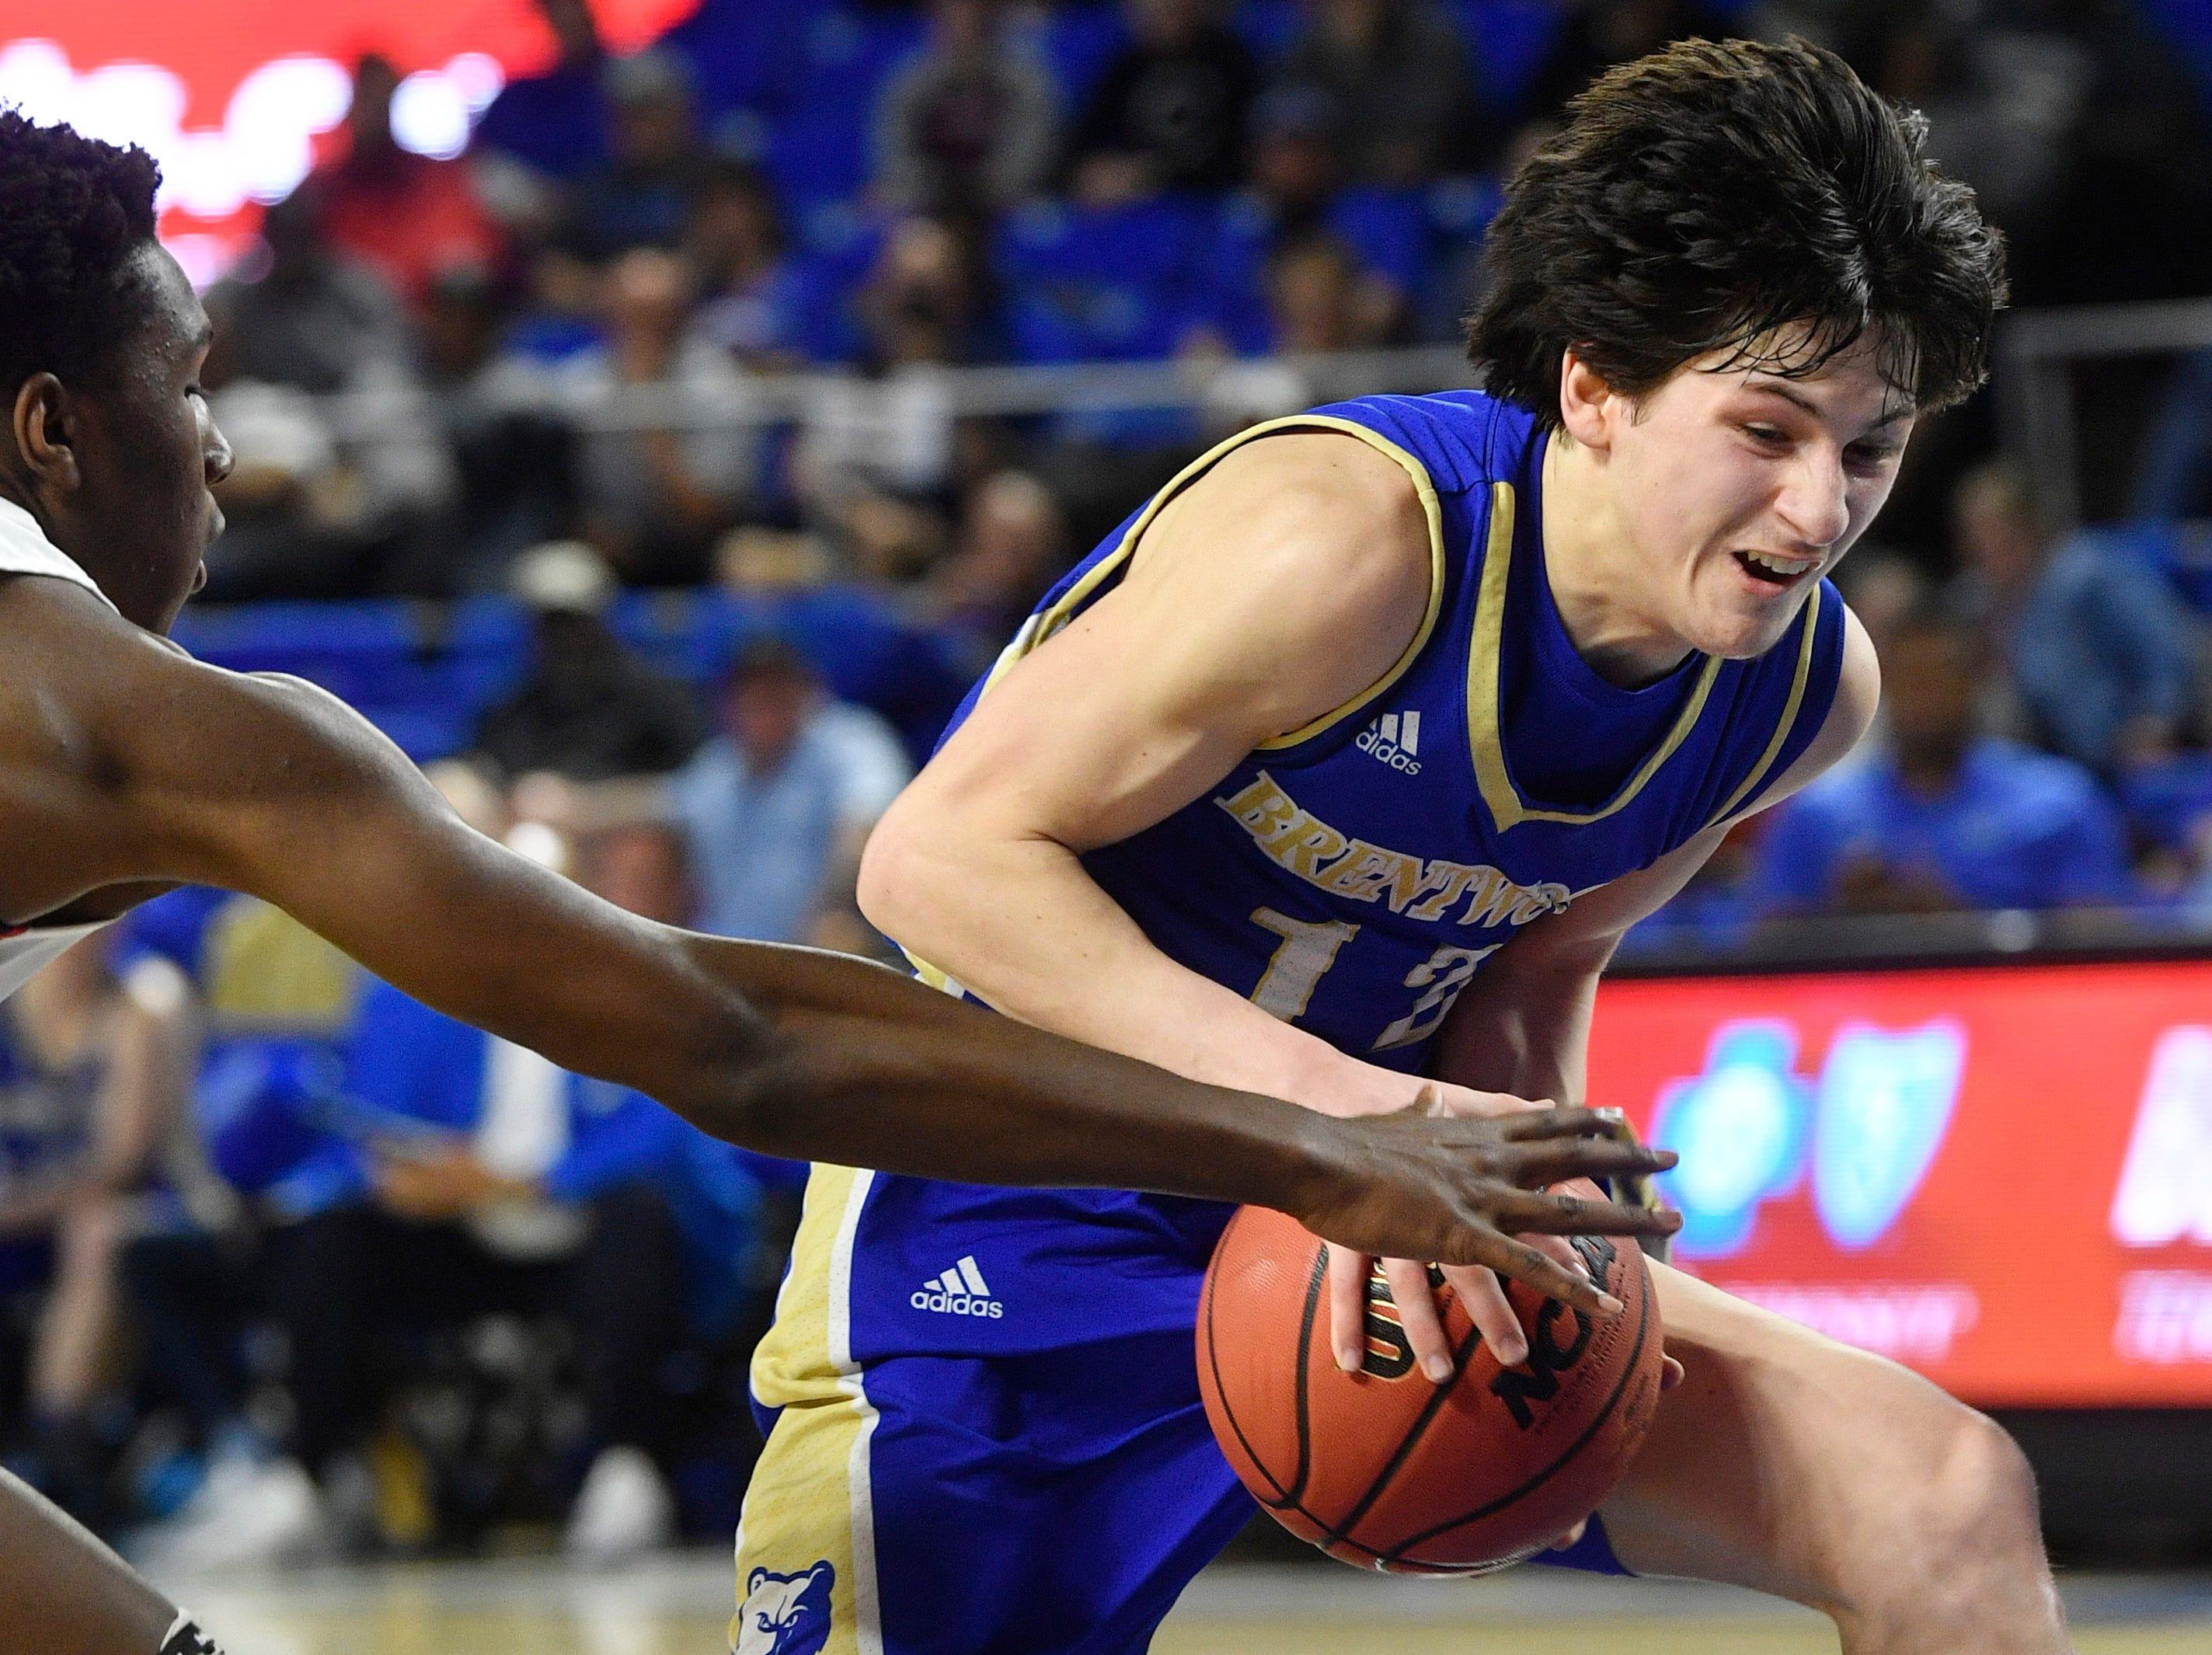 Brentwood's Preston Moore (12) drives for the basket as Brentwood plays Oakland in the TSSAA Class AAA quarterfinals Thursday, March 14, 2019, in Murfreesboro, Tenn.